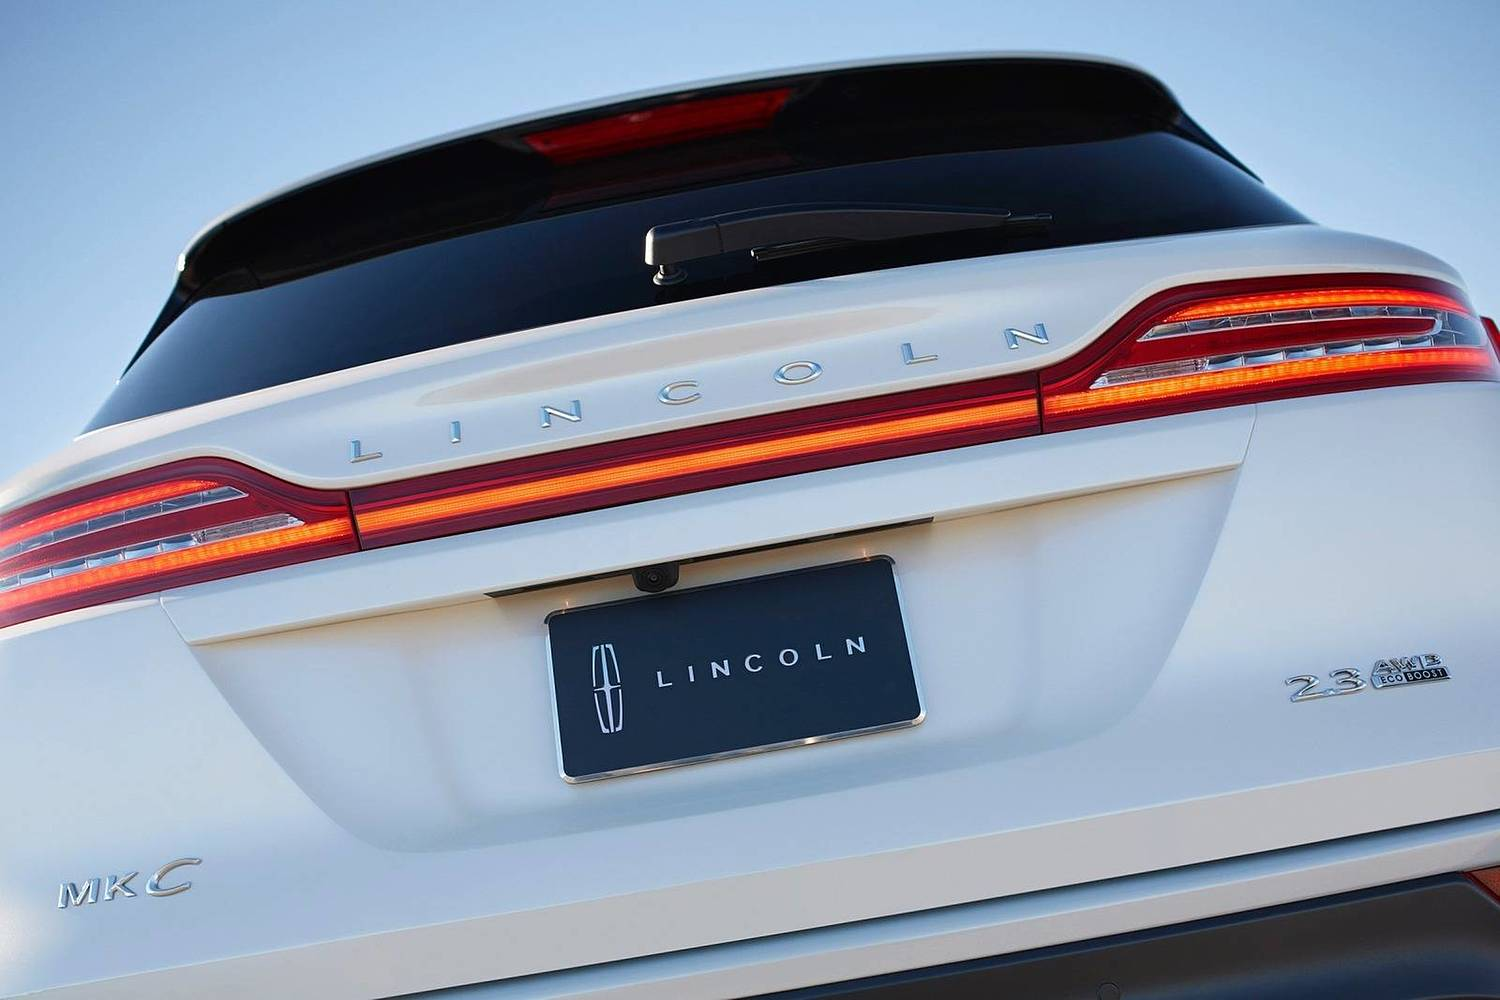 Lincoln MKC Select 4dr SUV Exterior Detail. Options Shown. (2016 model year shown)